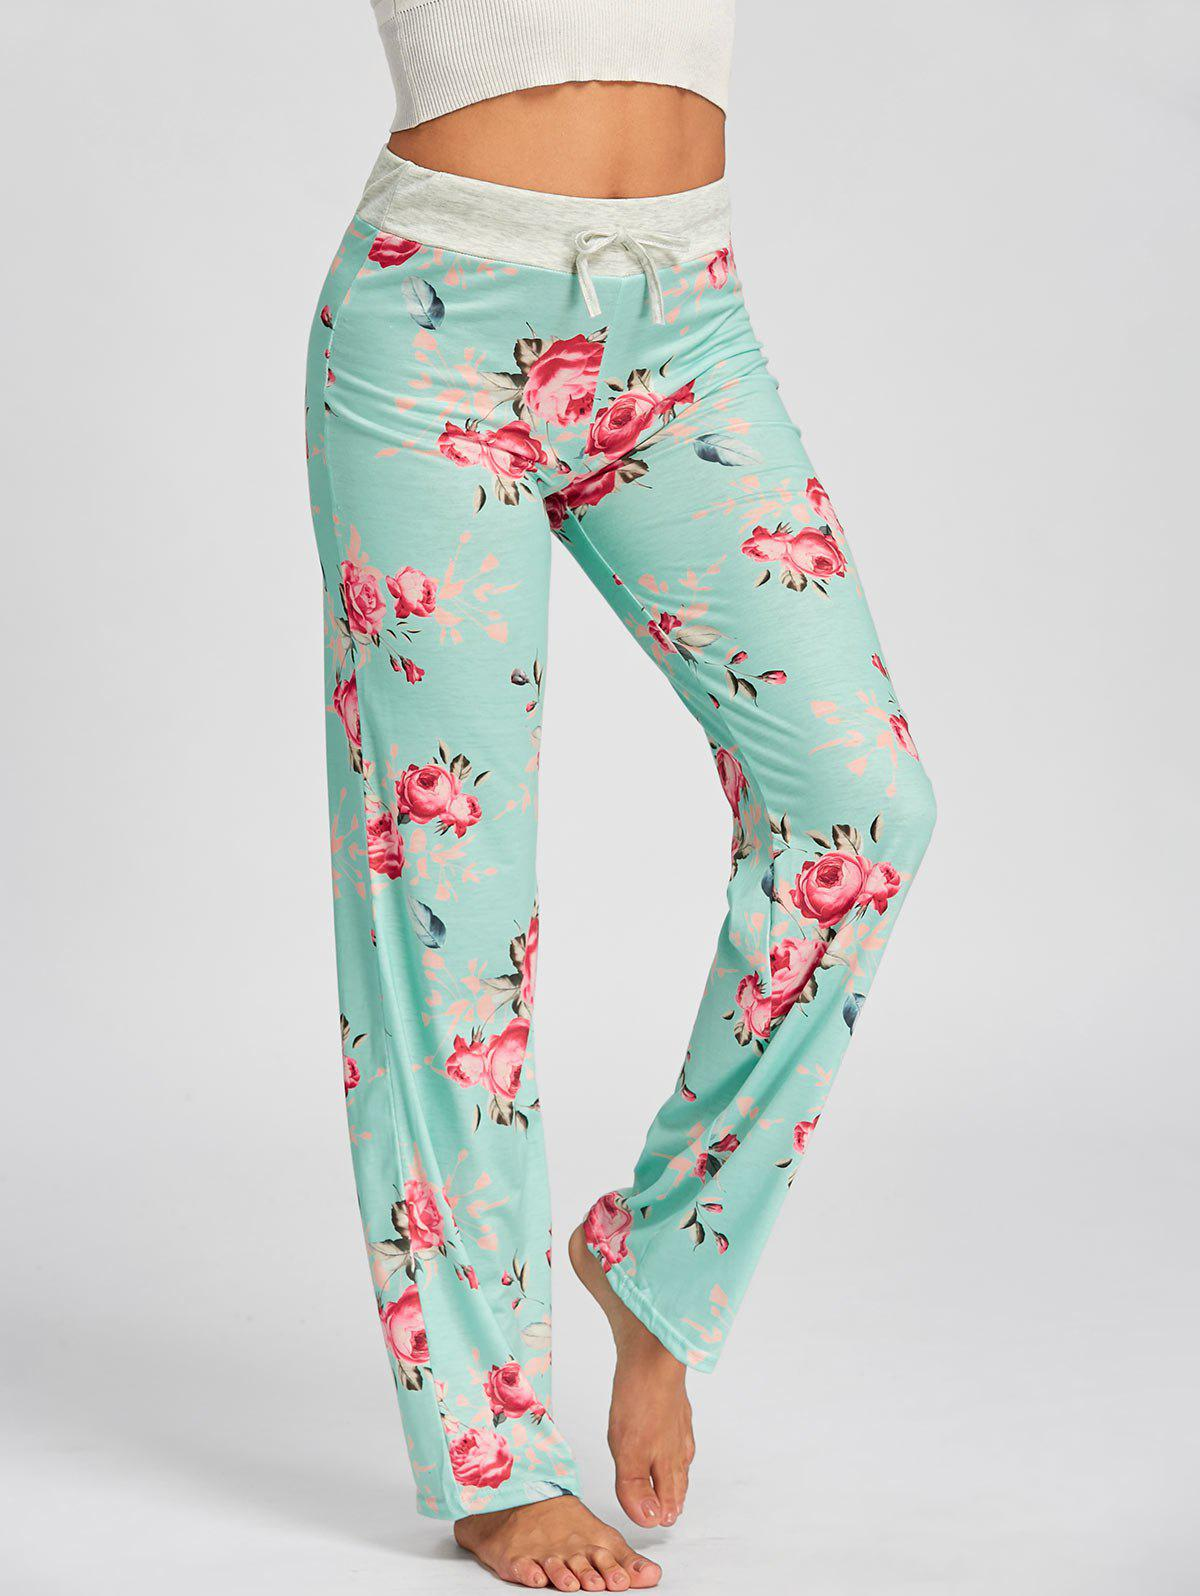 Drawstring Waist Floral PJ Pants - LIGHT GREEN M